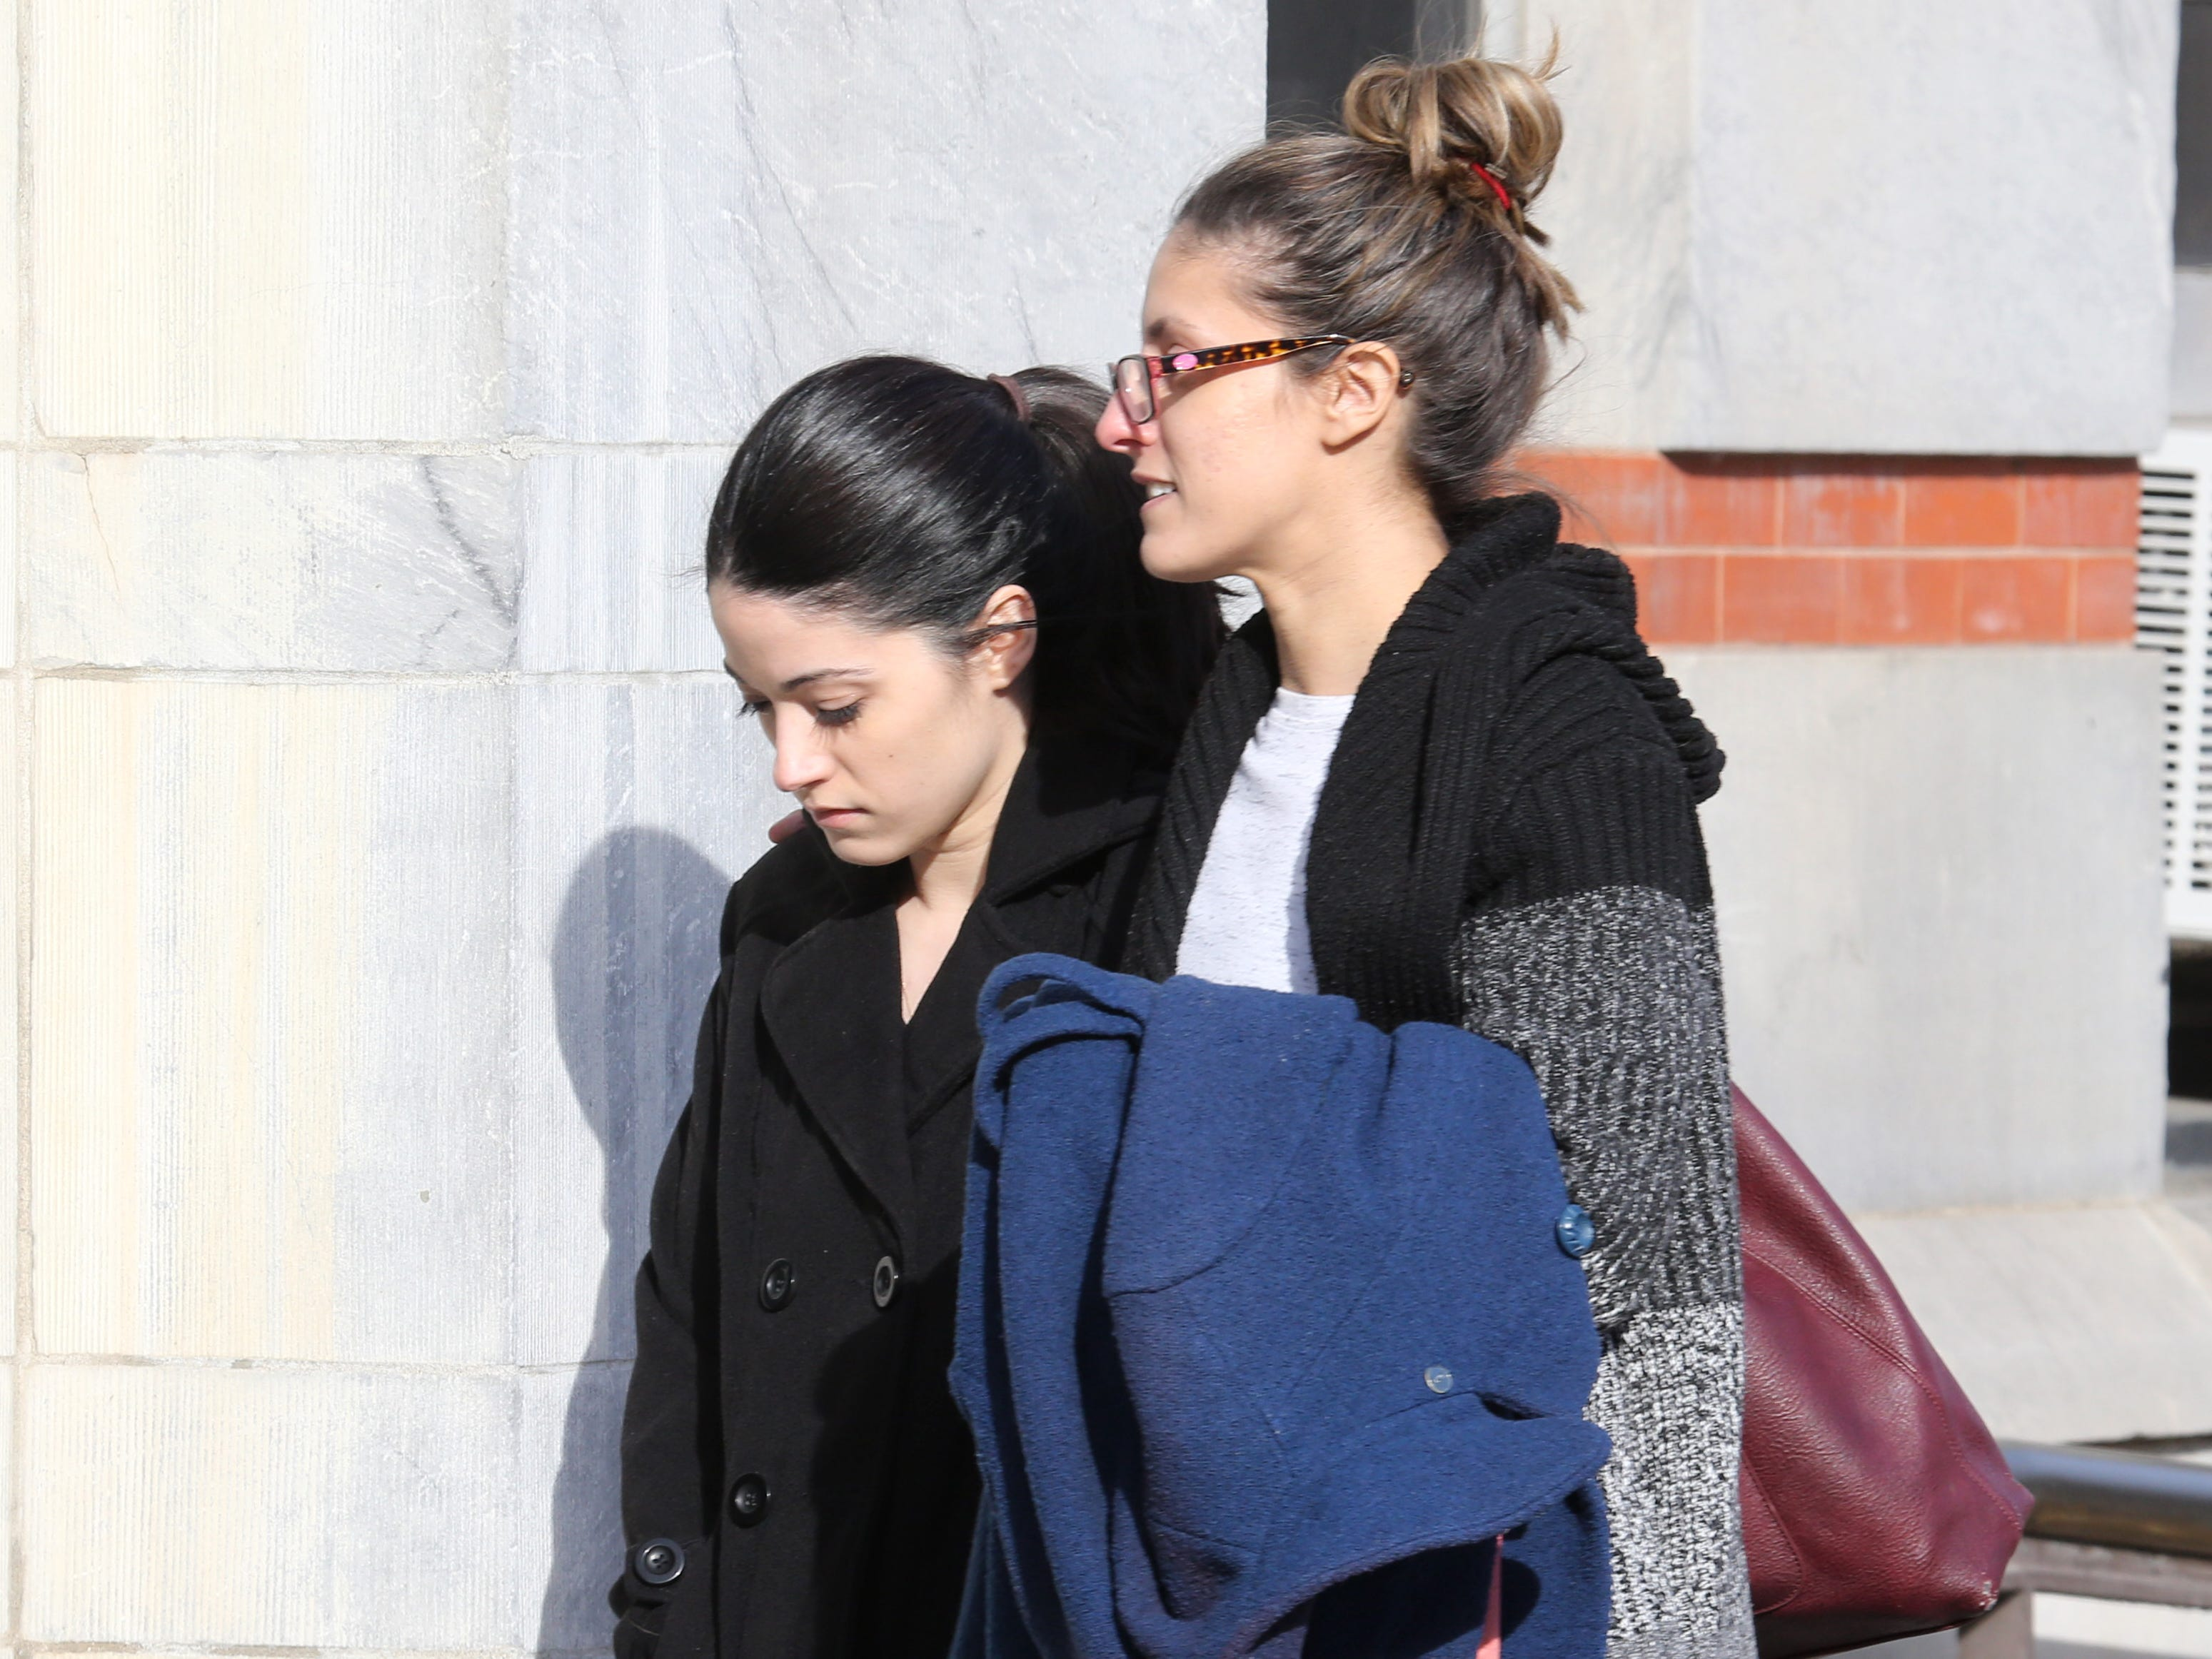 Nicole Addimando, at left, arrives at Dutchess County Court accompanied by her sister, Michelle Horton in the City of Poughkeepsie on January 17, 2019.